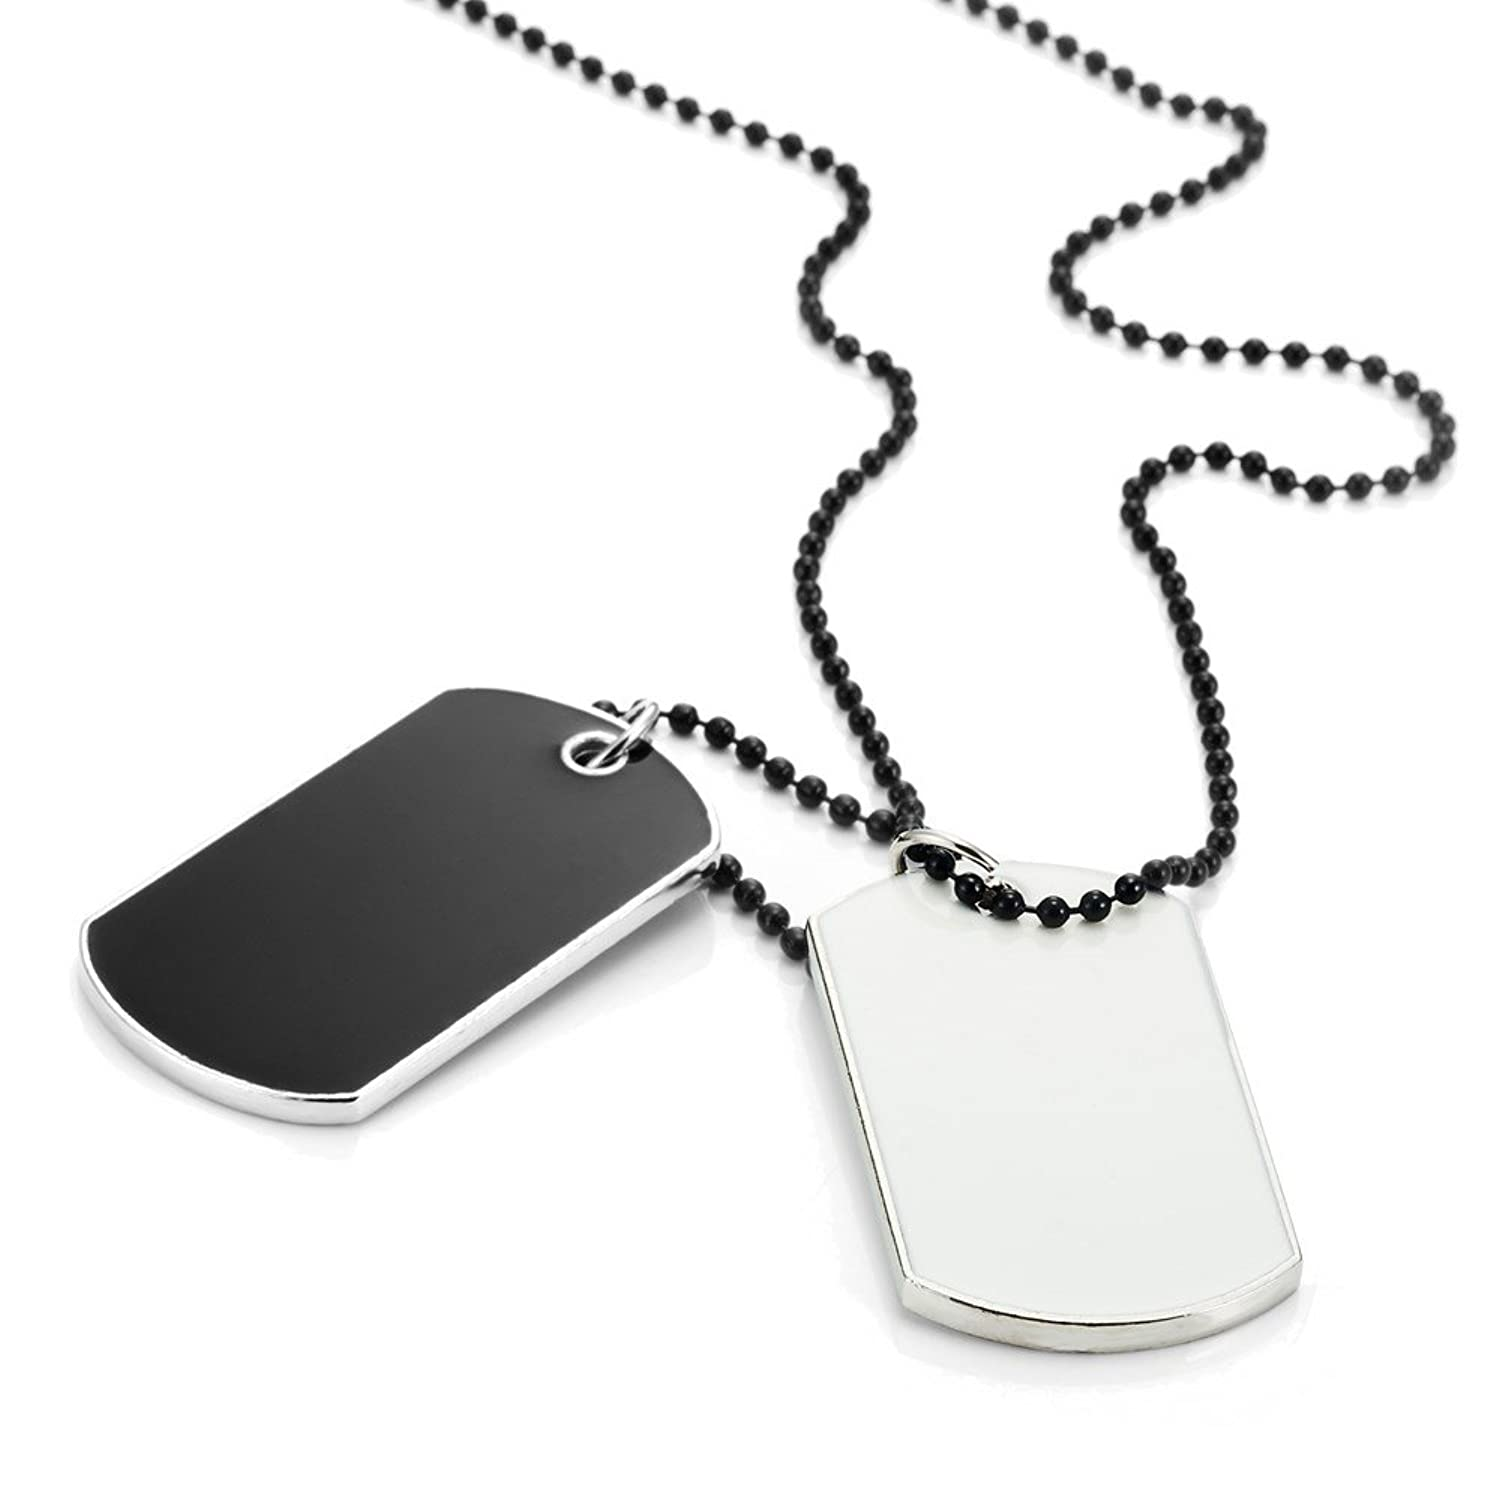 Army style 2pcs dog tag pendant mens necklace chain with branded army style 2pcs dog tag pendant mens necklace chain with branded gift box amazon mozeypictures Images